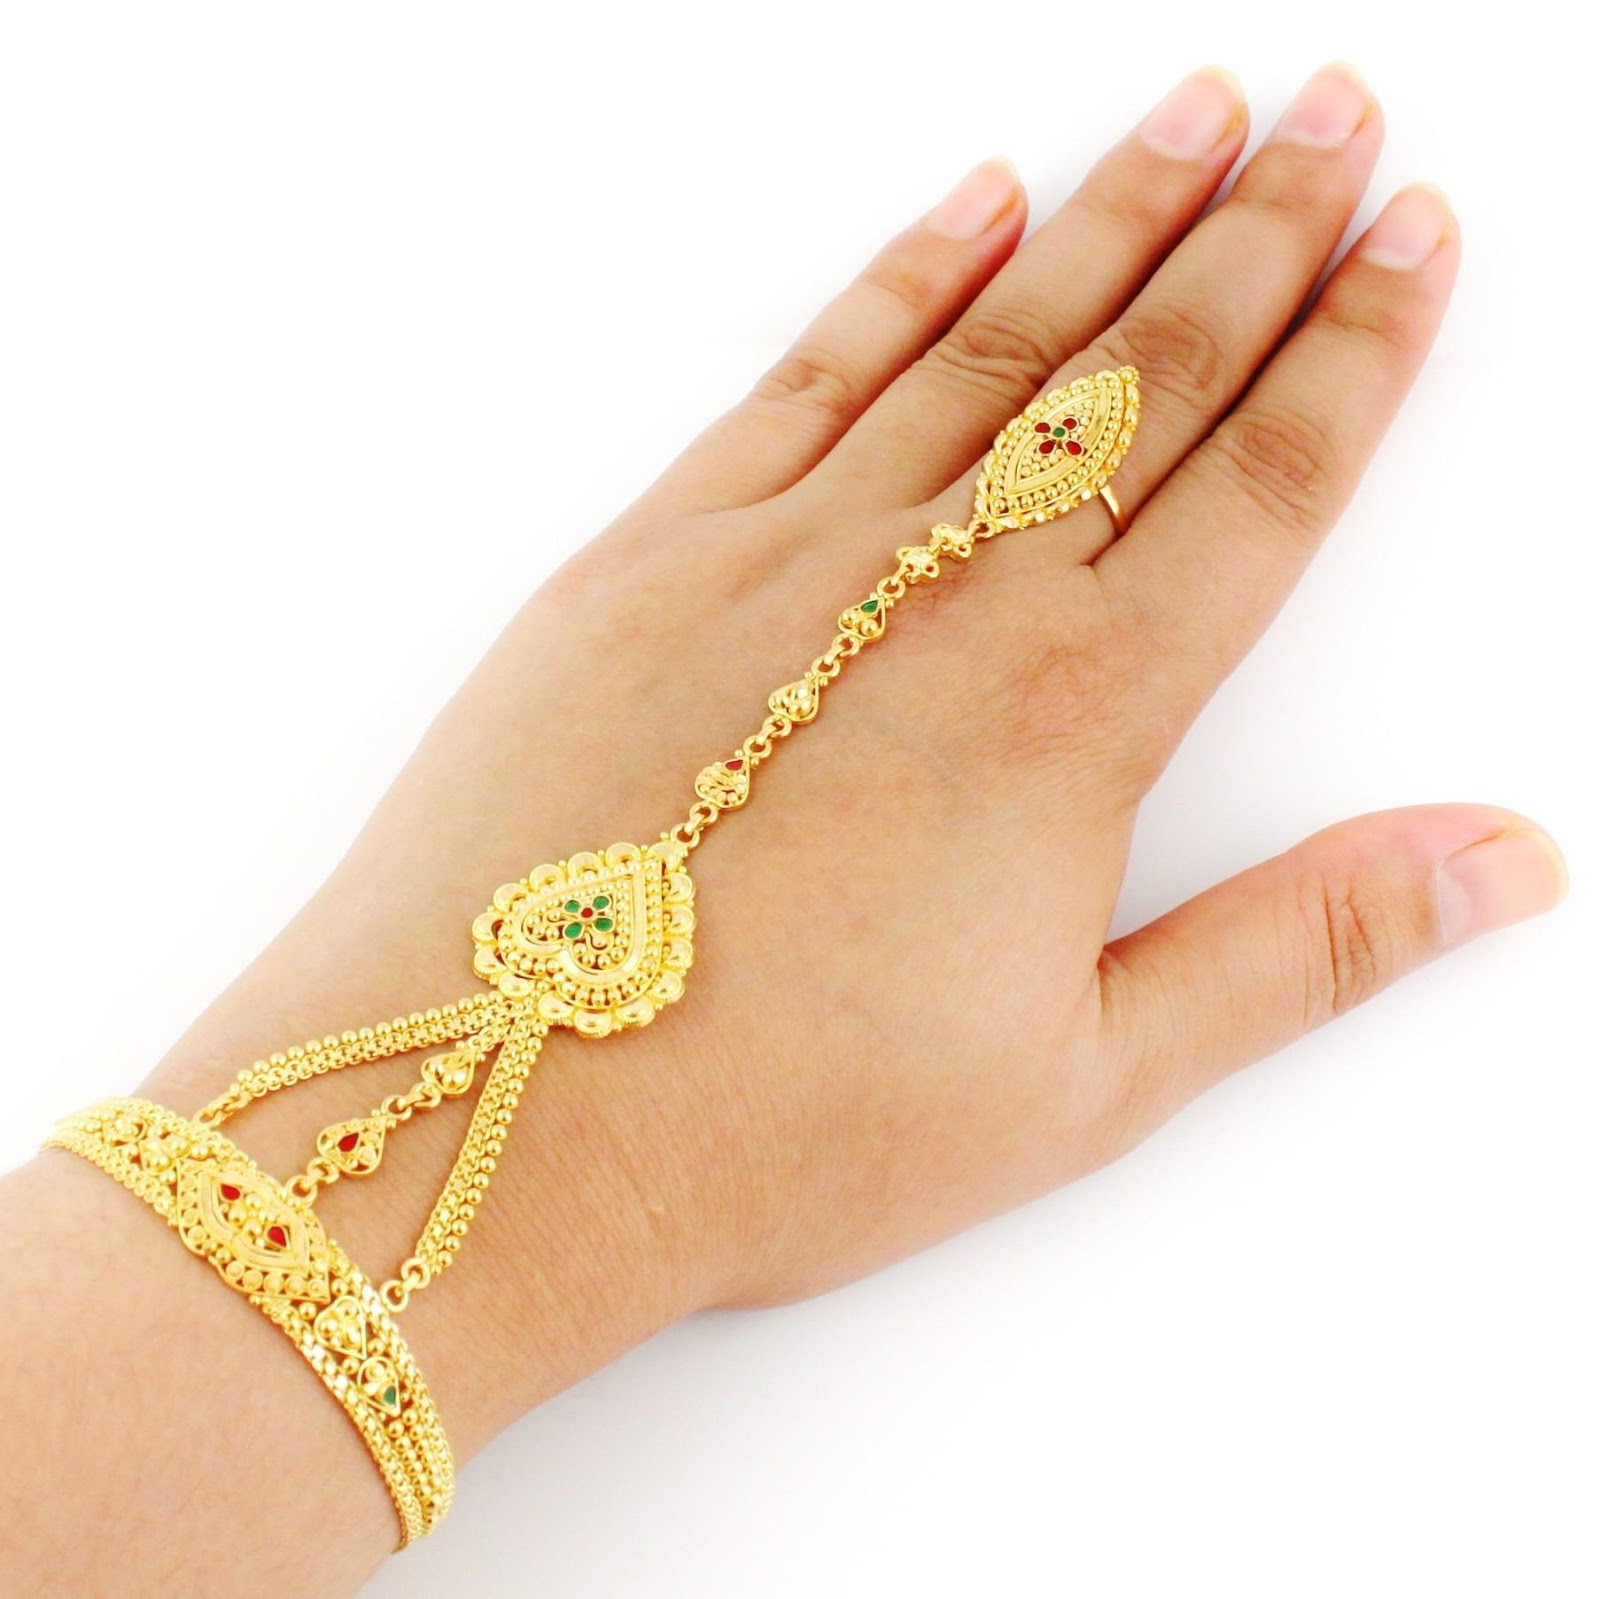 Choosing the Perfect Women's Bracelets. Women's bracelets are fine or costume jewelry pieces that allow you to accessorize in whatever style suits you. You can express a more personal side or opt for a versatile bracelet that works for any occasion.